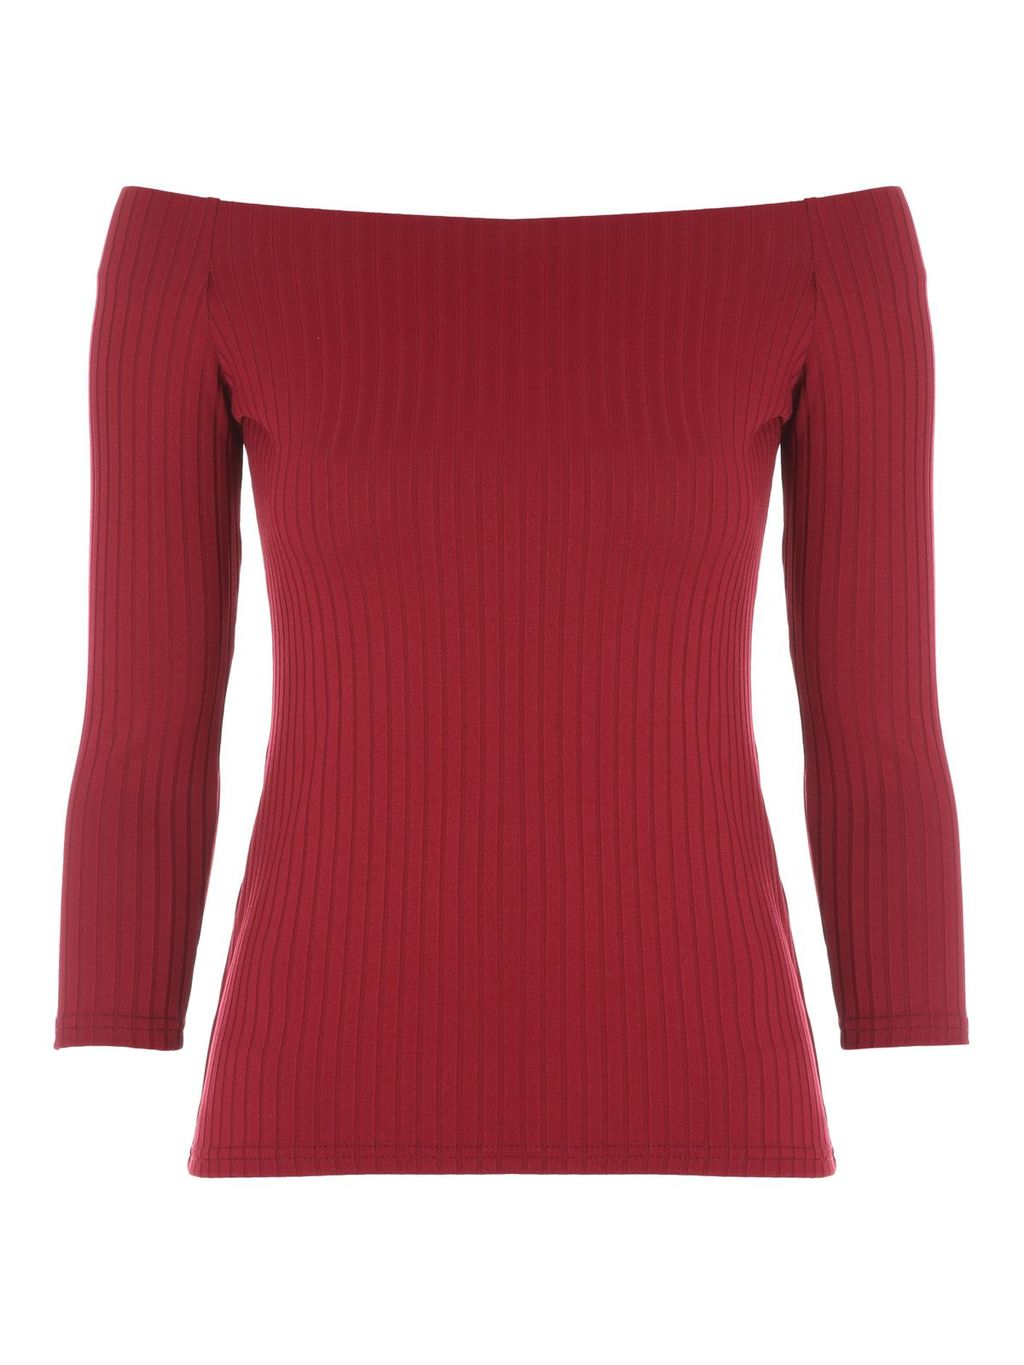 Ribbed Bardot Top, Berry - neckline: off the shoulder; pattern: plain; occasions: casual, creative work; length: standard; style: top; fibres: polyester/polyamide - stretch; fit: body skimming; sleeve length: 3/4 length; sleeve style: standard; texture group: jersey - clingy; pattern type: fabric; predominant colour: raspberry; season: a/w 2016; wardrobe: highlight